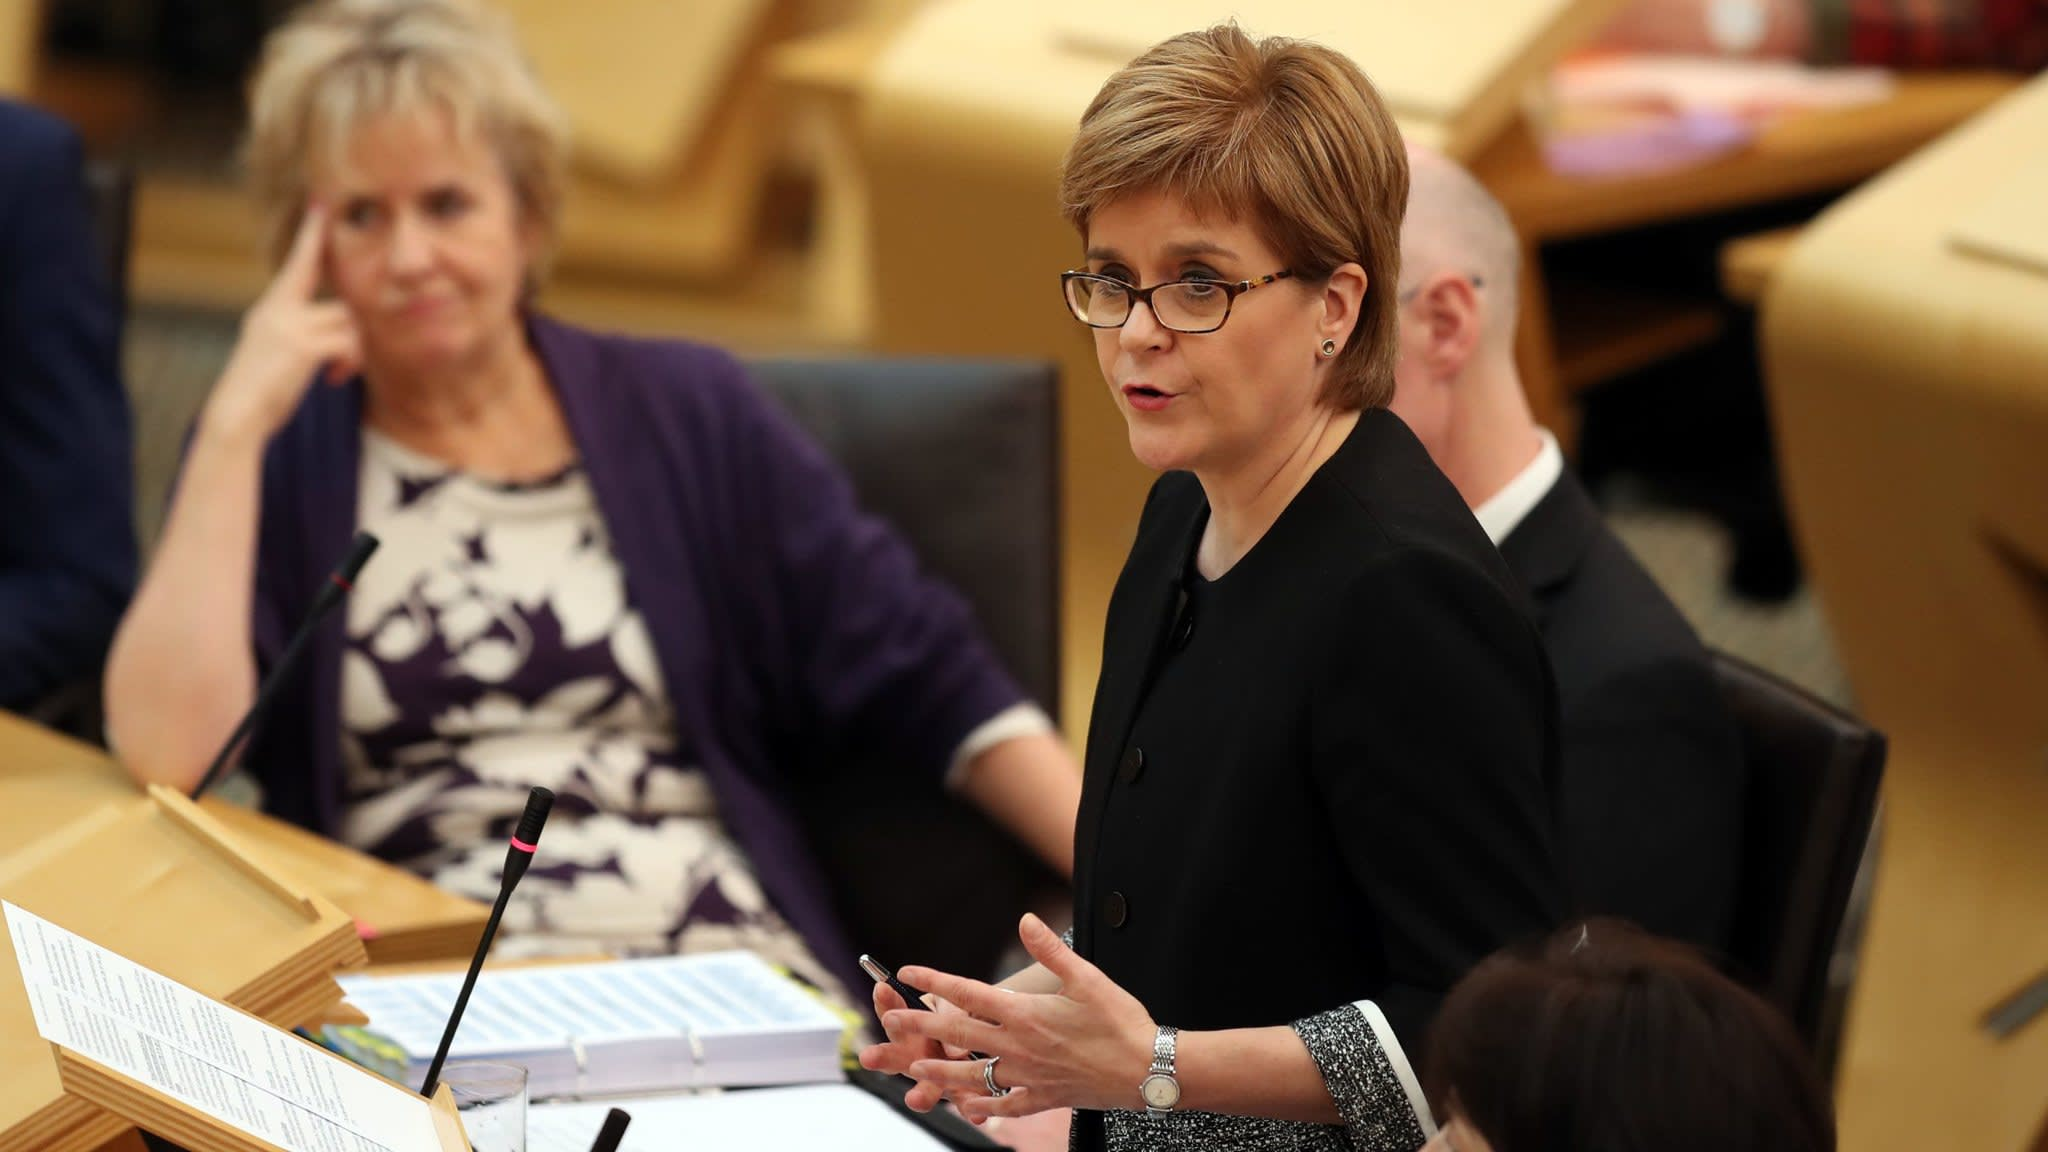 Scottish leader says support growing for a Brexit 'compromise option' | Financial Times